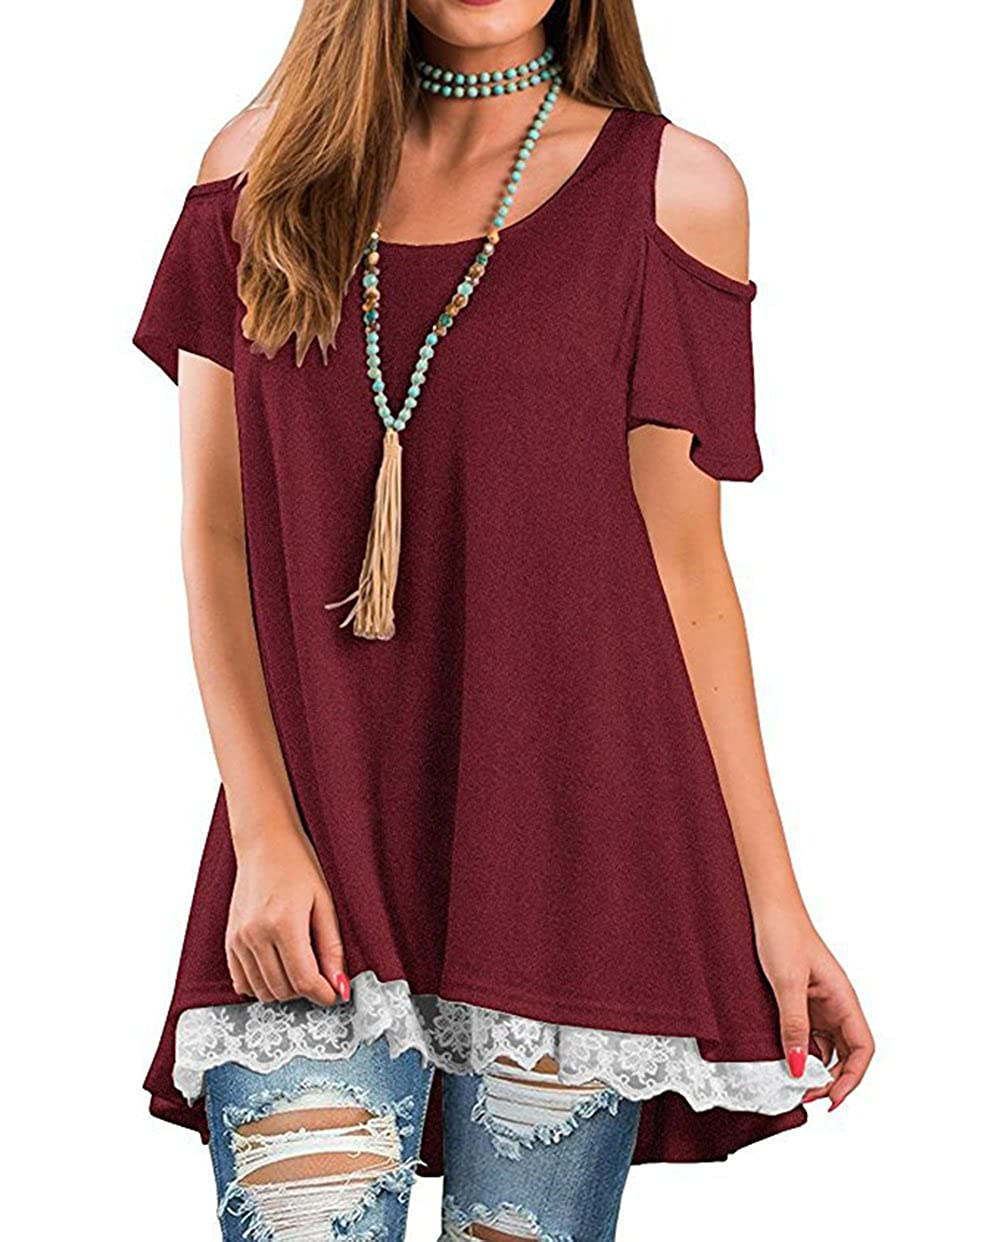 44010f25c245e Top 10 wholesale Short Sleeve Tunic - Chinabrands.com